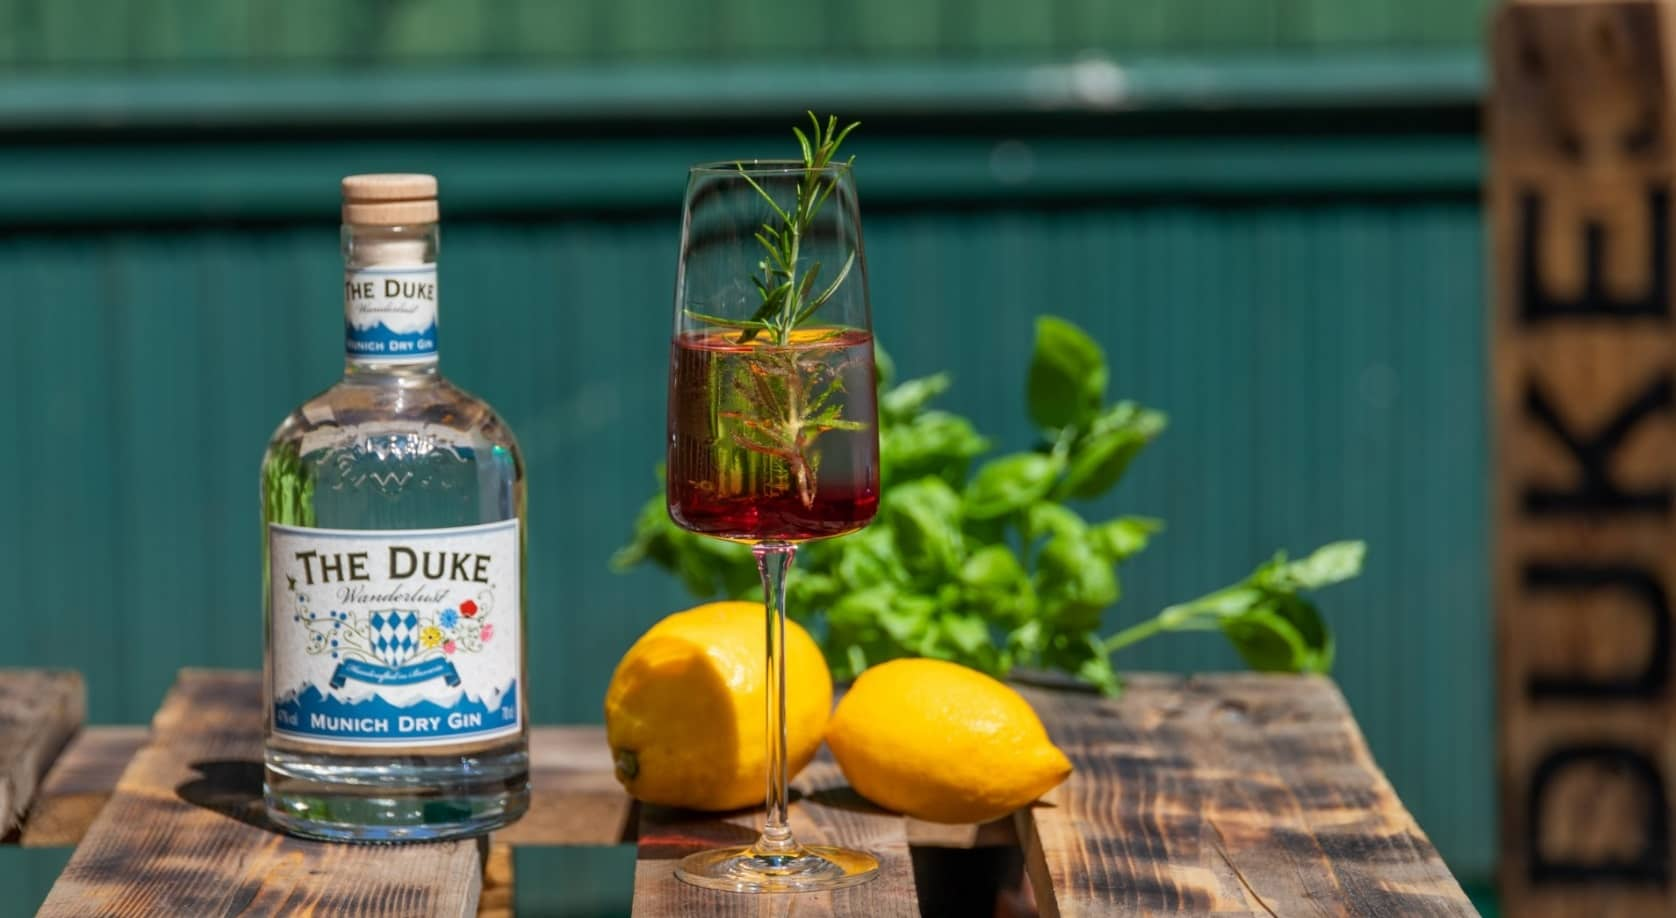 The Duke Gin Test & Tasting